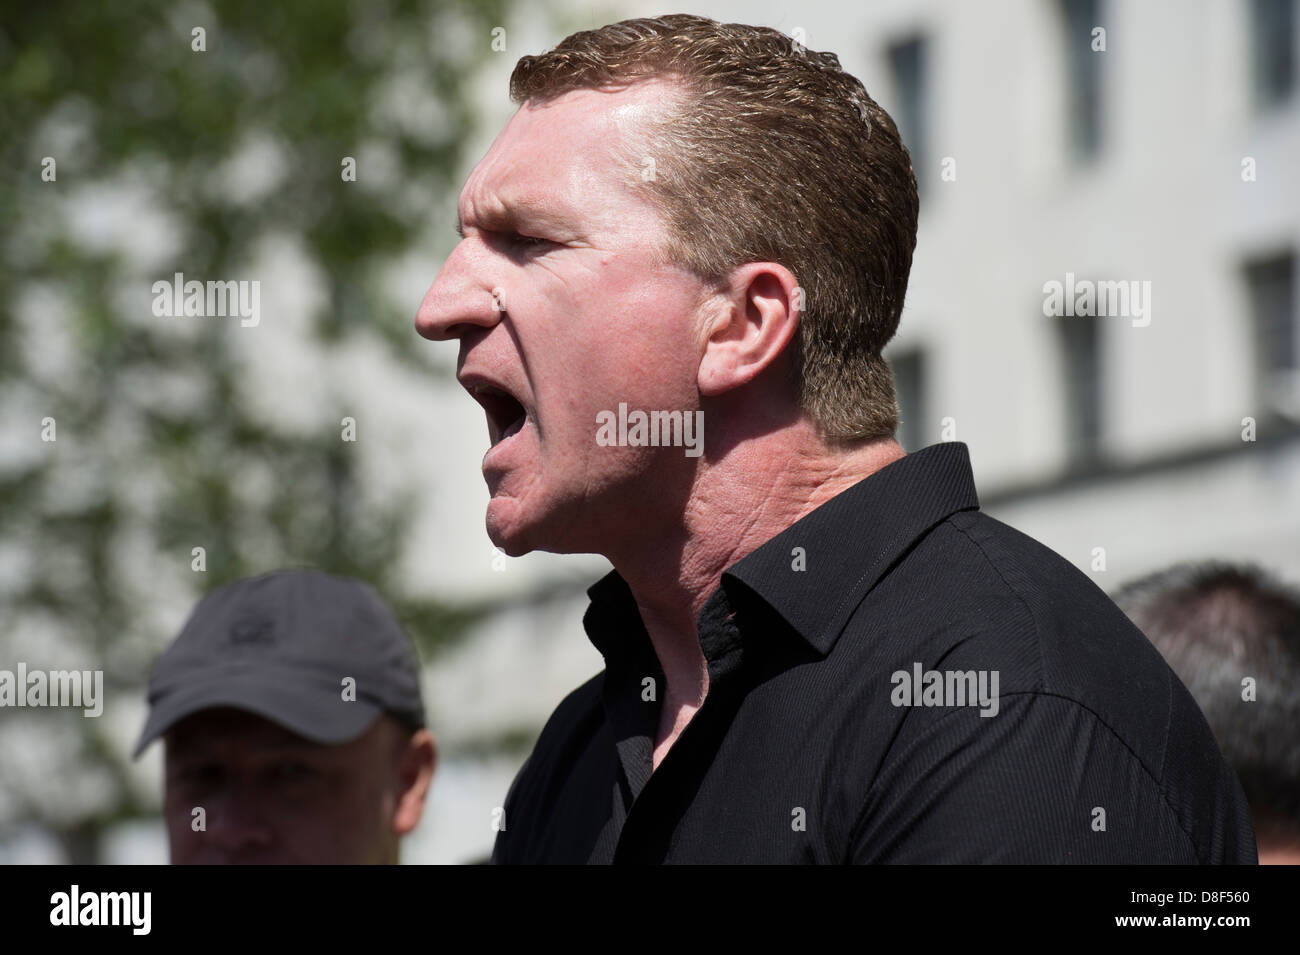 English Defence League EDL rally in front of Downing Street on May 27th 2013. EDL leader Kevin Carroll pictured - Stock Image